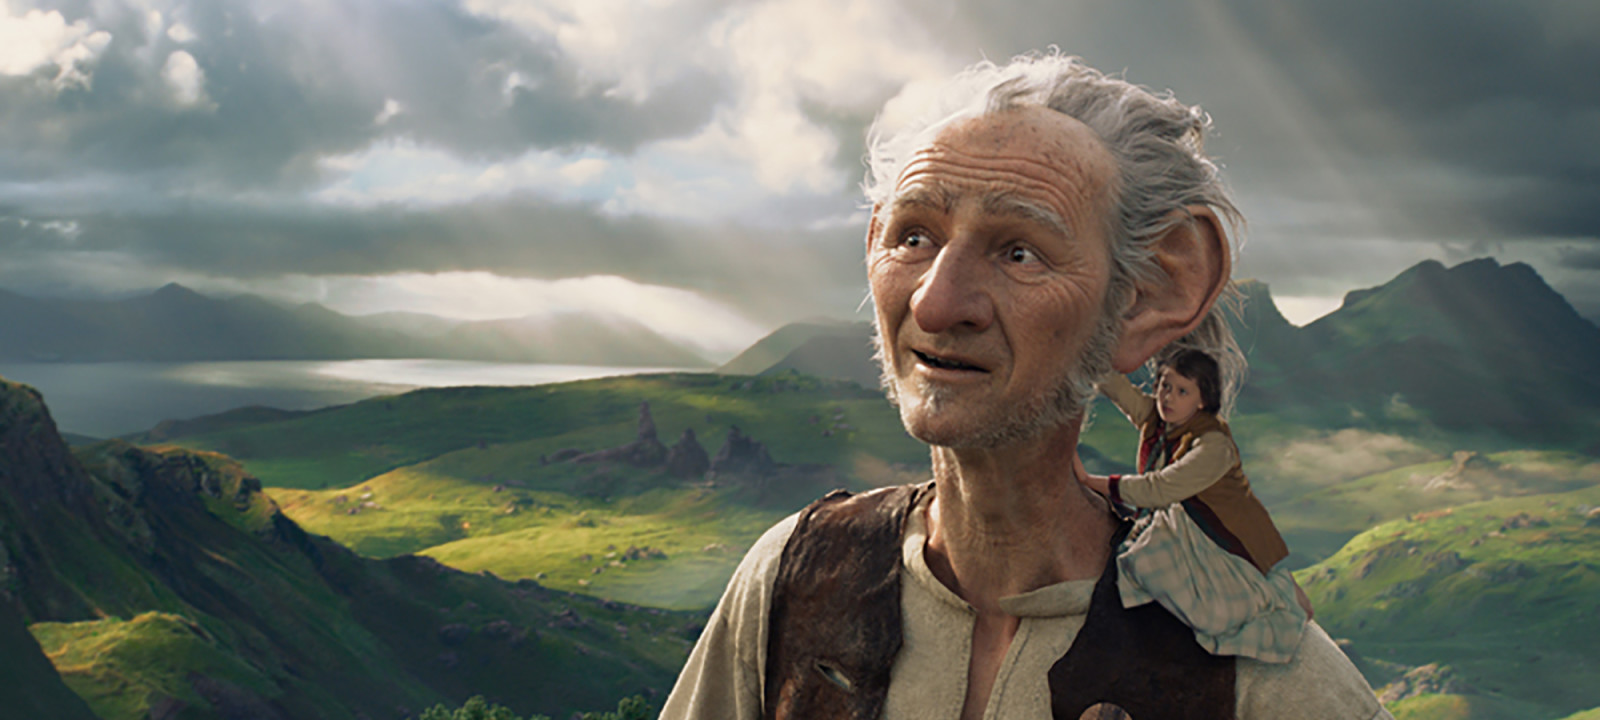 Movies Trailer – The BFG, directed by Steven Spielberg